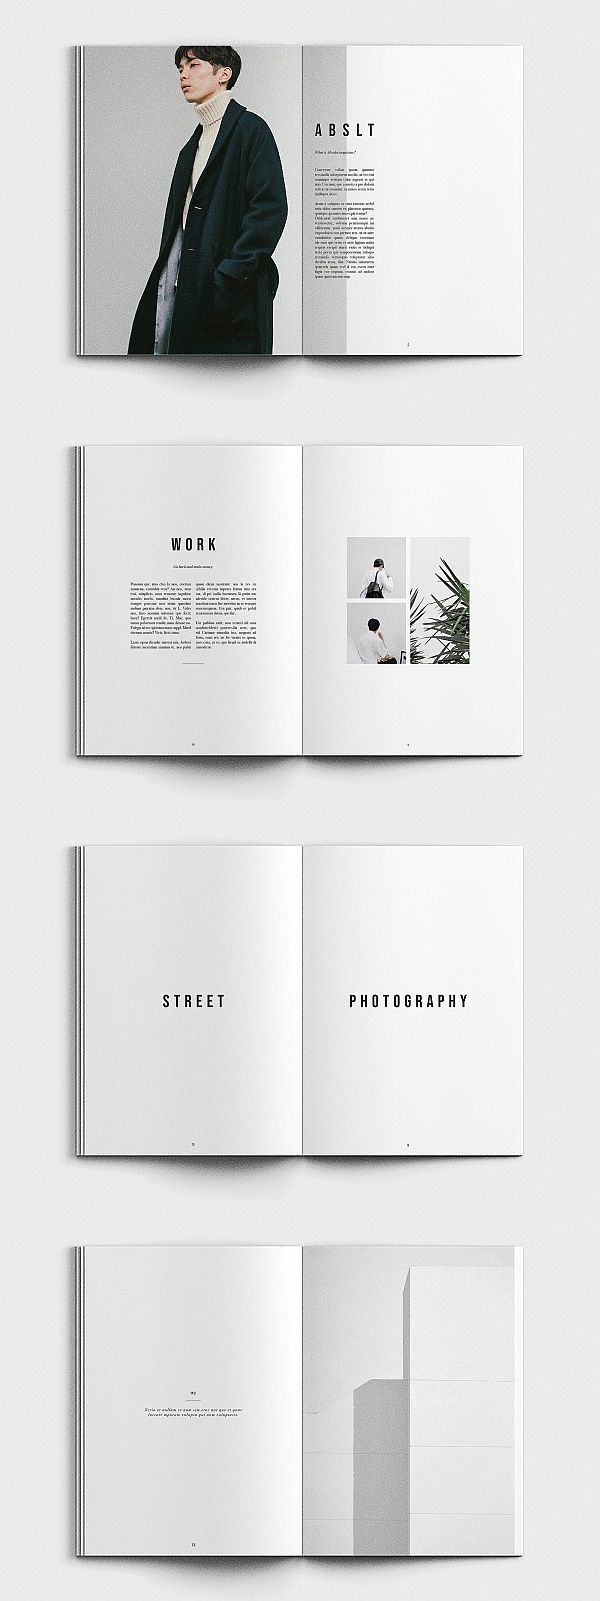 ABSOLUT Photography Portfolio Template #portfolio #lookbook #brochure #template #brochuretemplates #indesign #templates #layout #editorial